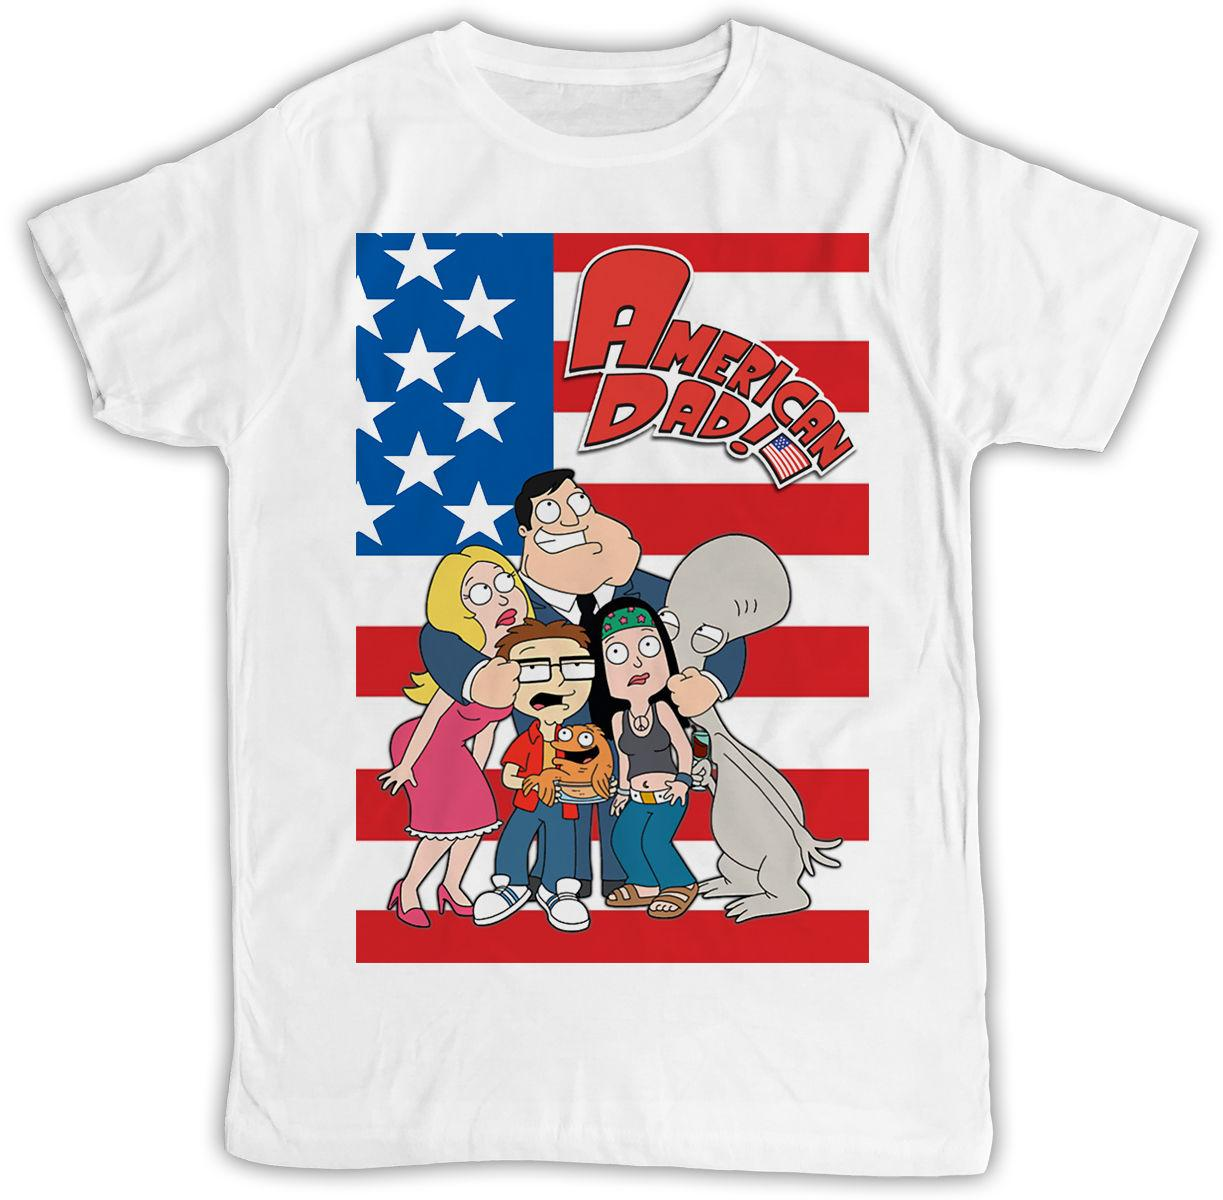 8ebc7d05d FUNNY MOVIE POSTER AMERICAN DAD FLAG IDEAL BIRTHDAY GIFT SHORT SLEEVE T  SHIRT Buy Tshirts The Who T Shirts From Bincheng9, $11.56| DHgate.Com